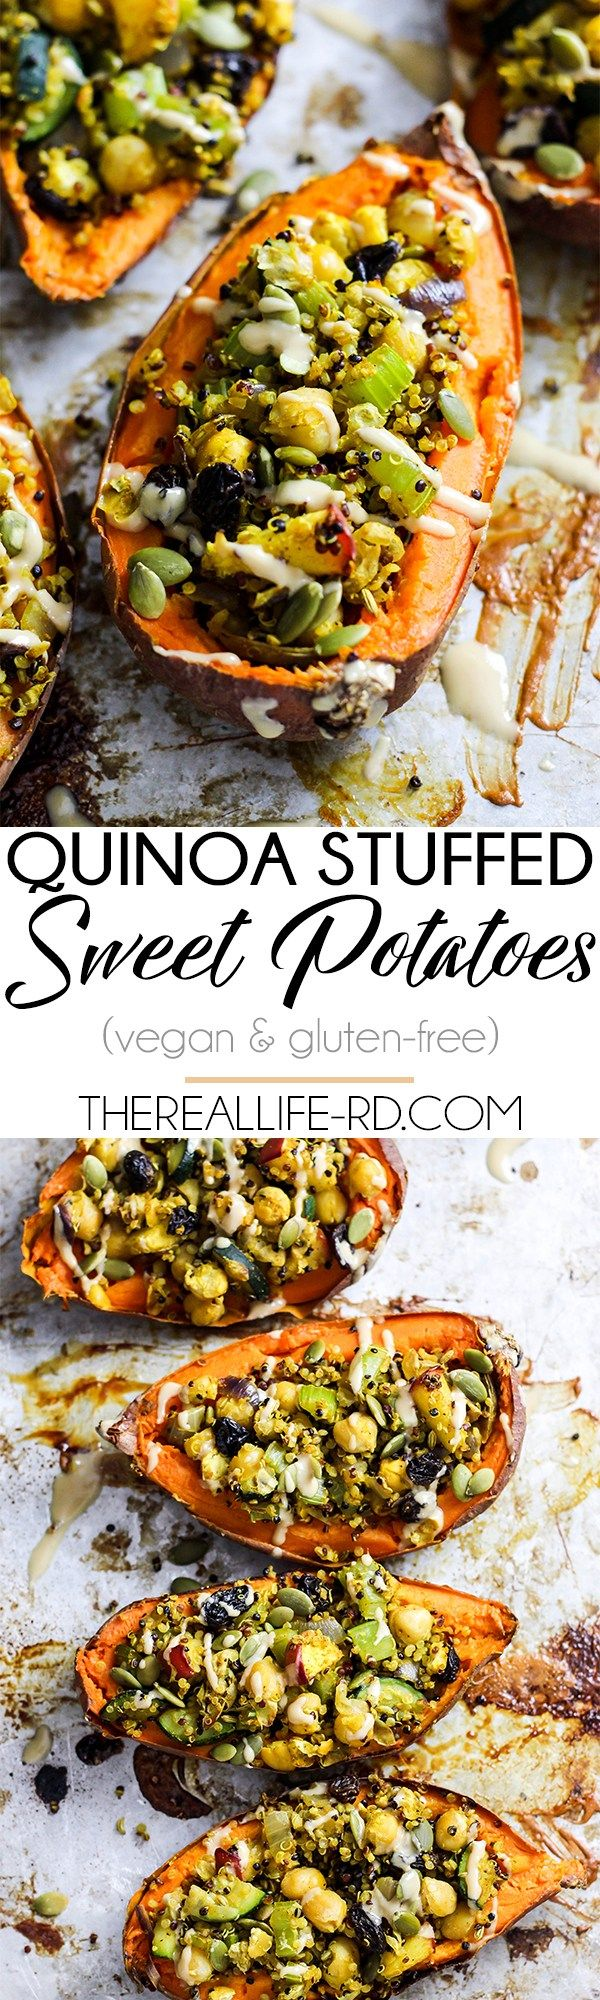 Quinoa stuffed sweet potatoes - a satisfying dinner full of tasty ingredients like chickpeas, raisins, and sweet potato! | The Real Life RD